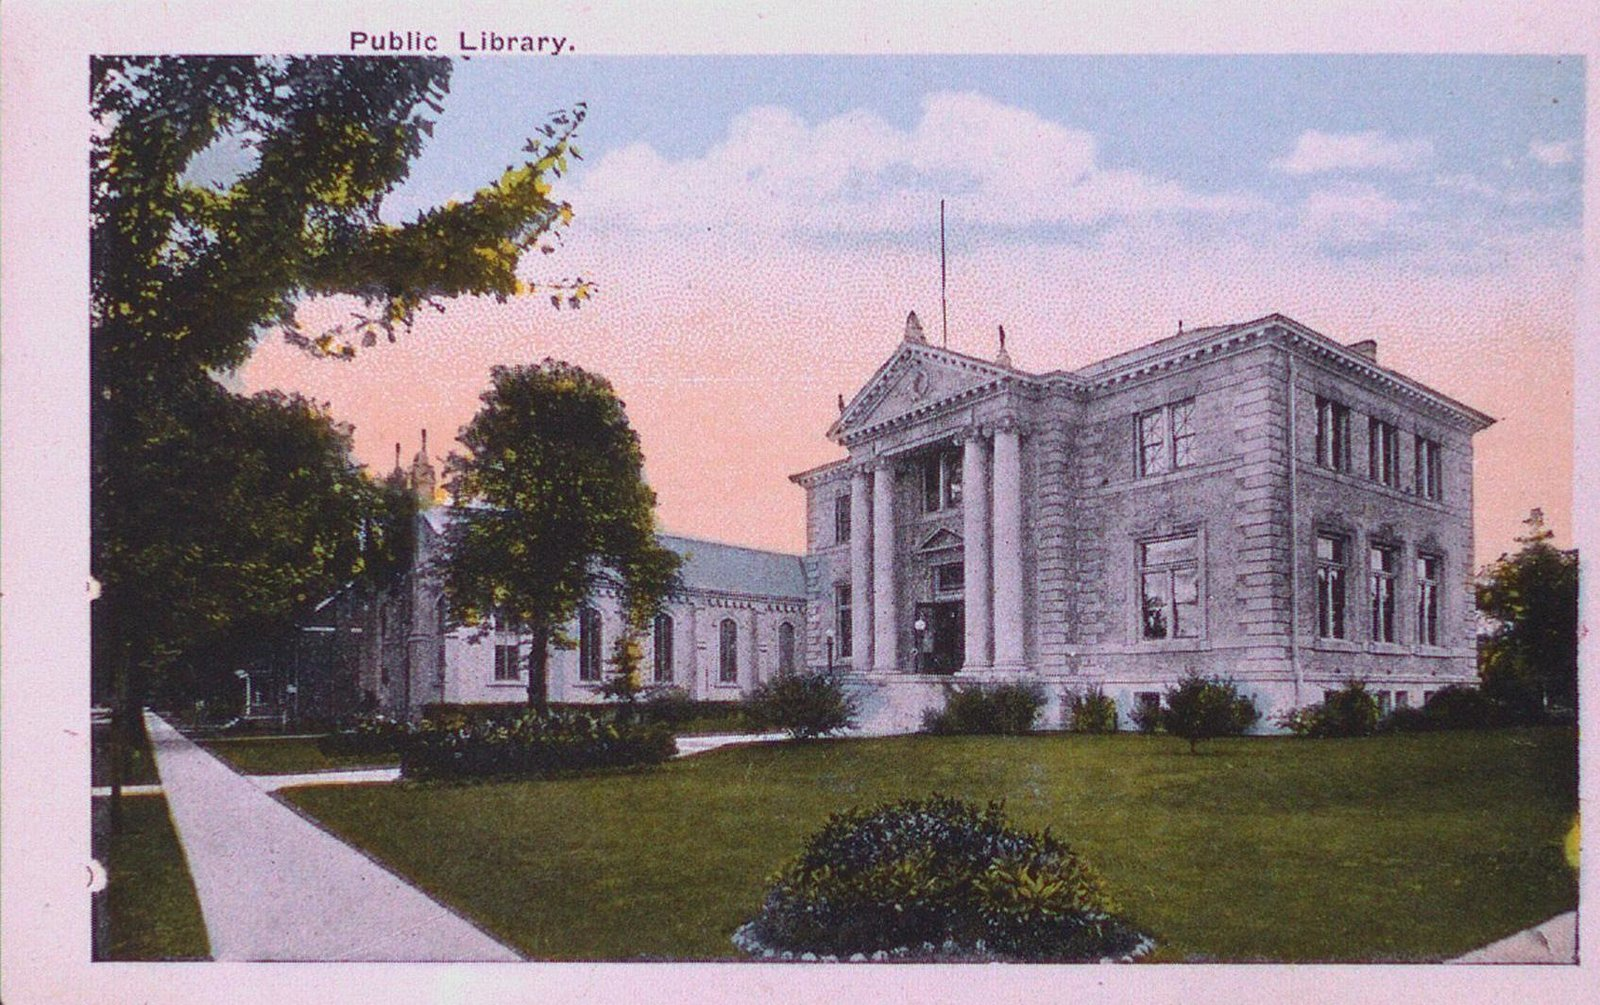 Views of St. Catharines: The Public Library